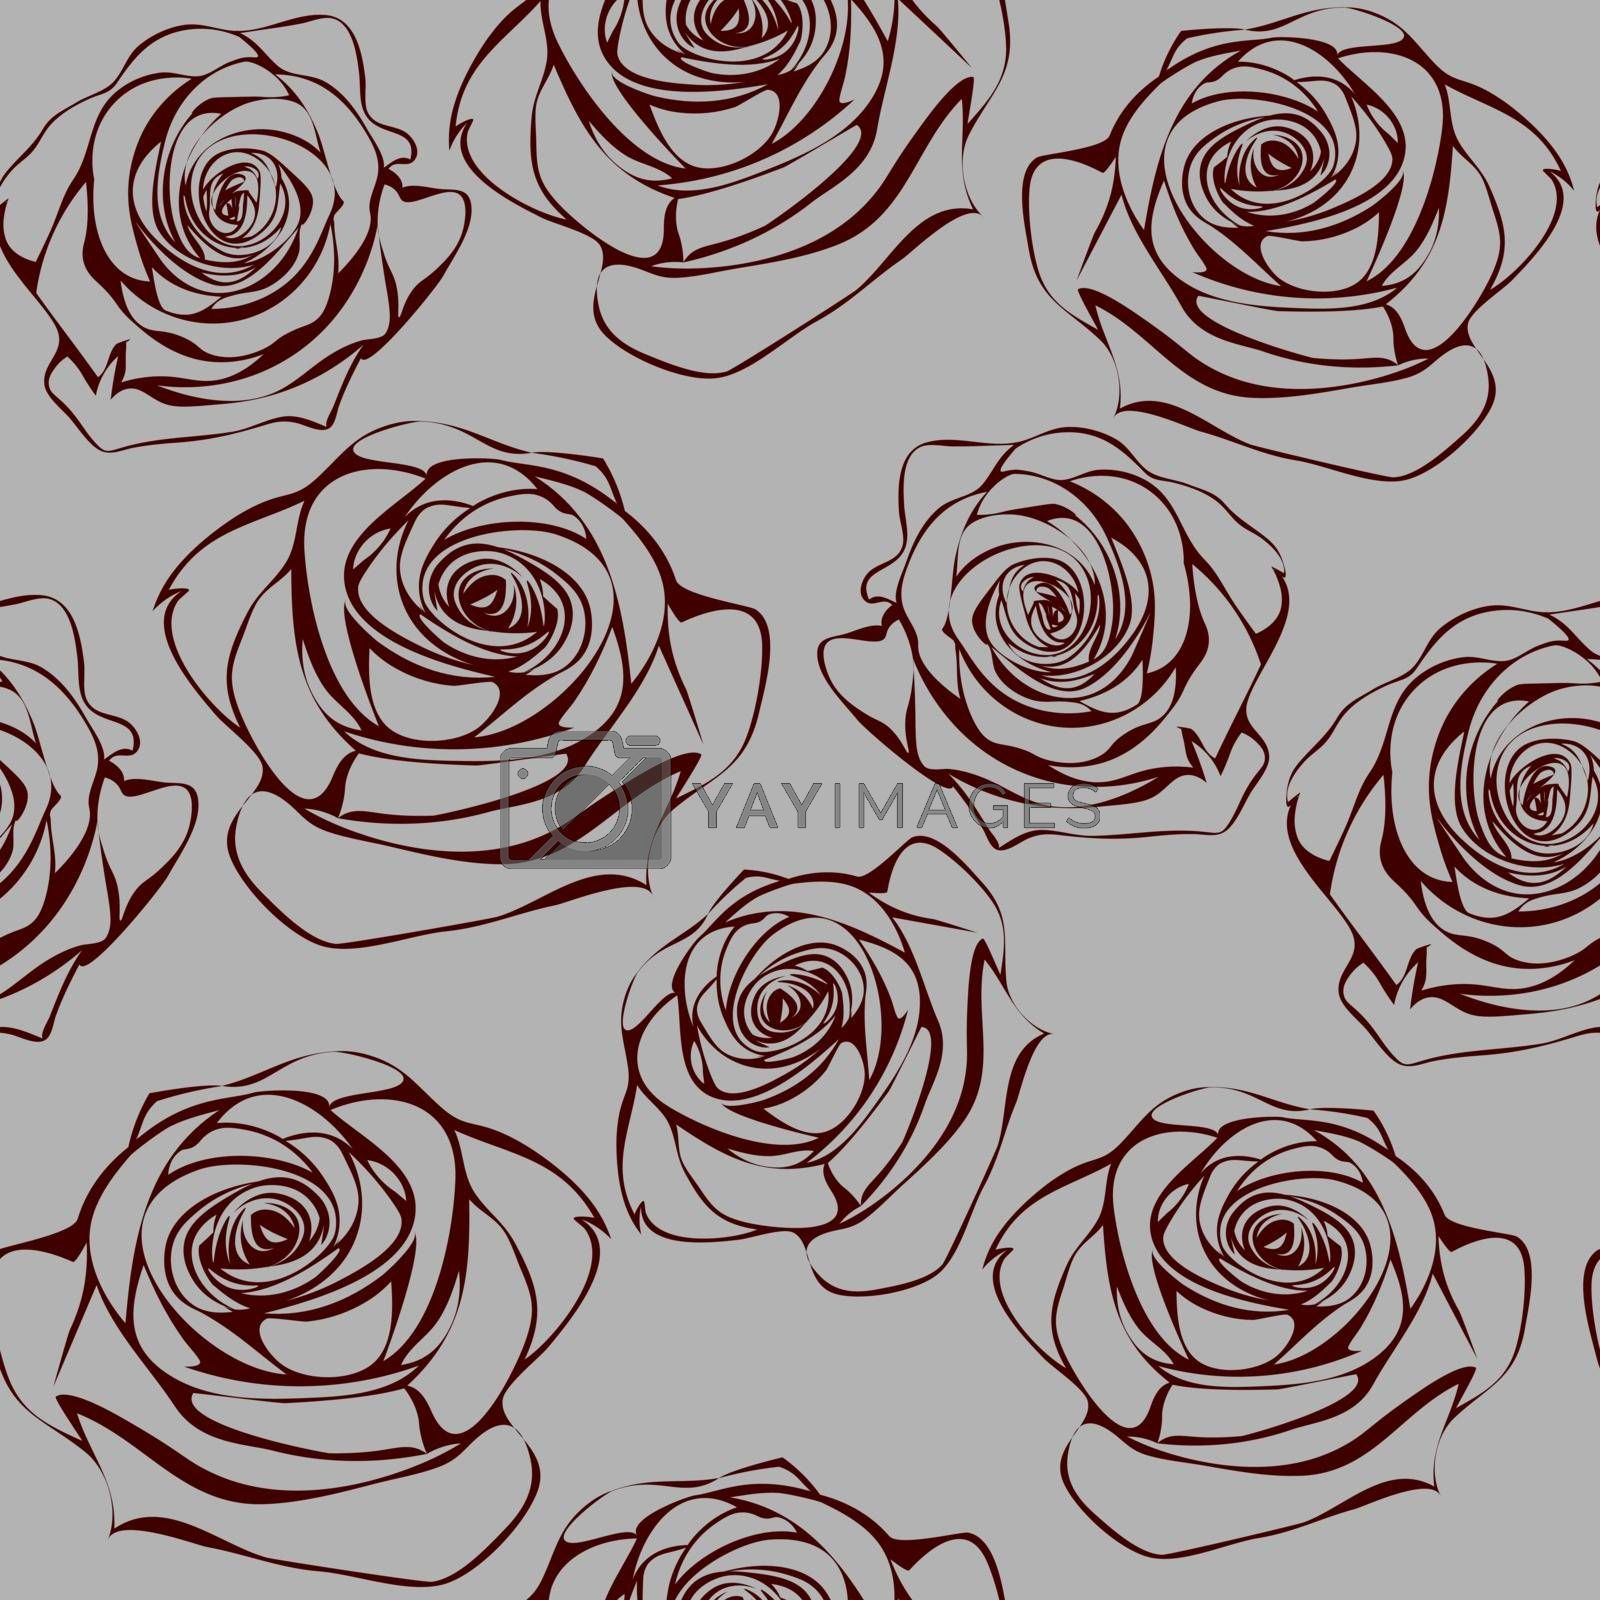 Seamless pattern with hand drawn dark red roses on grey background